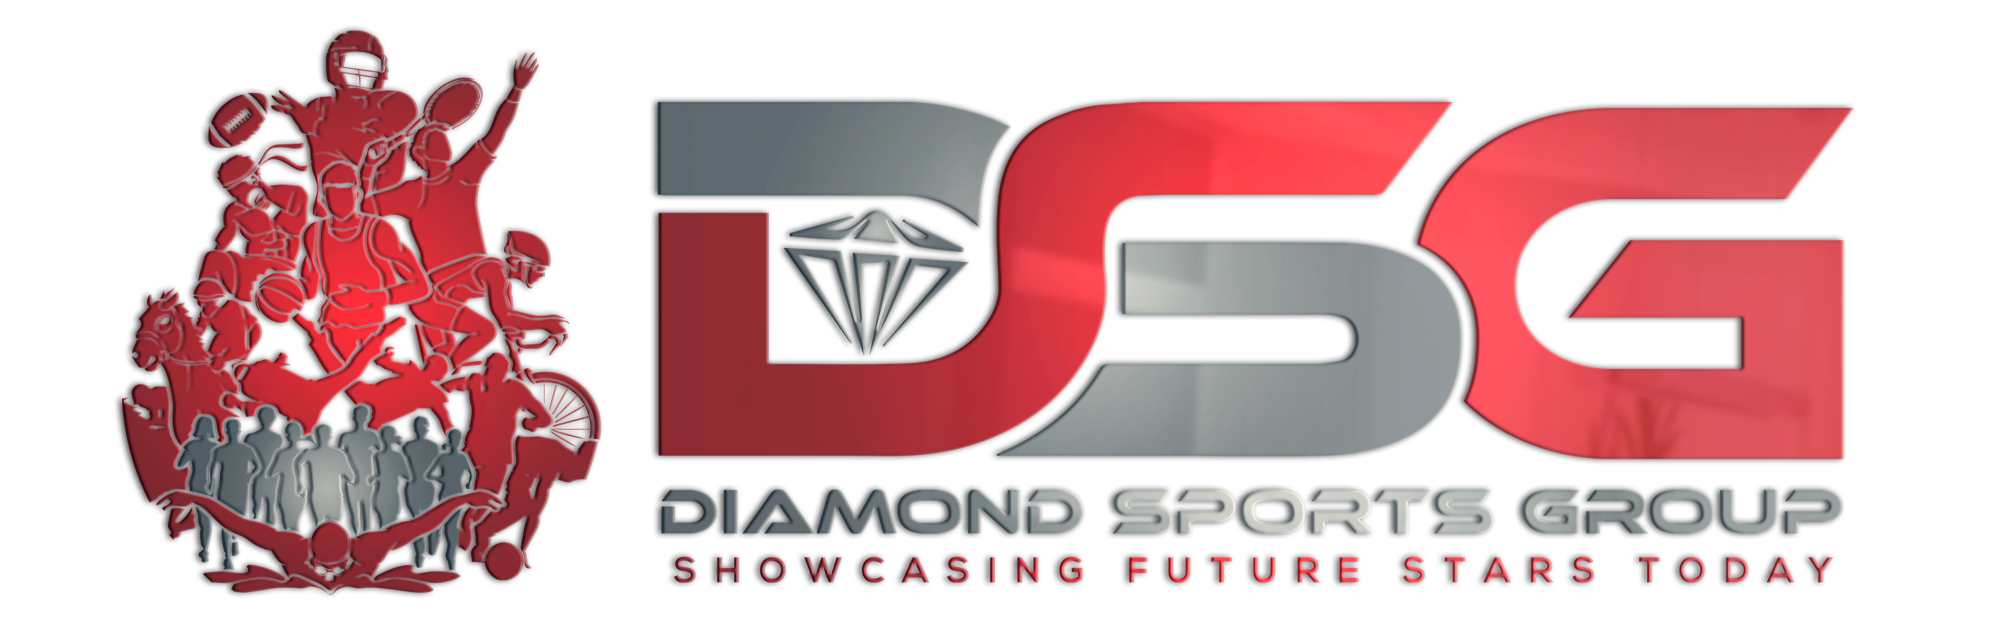 Diamond Sports Group